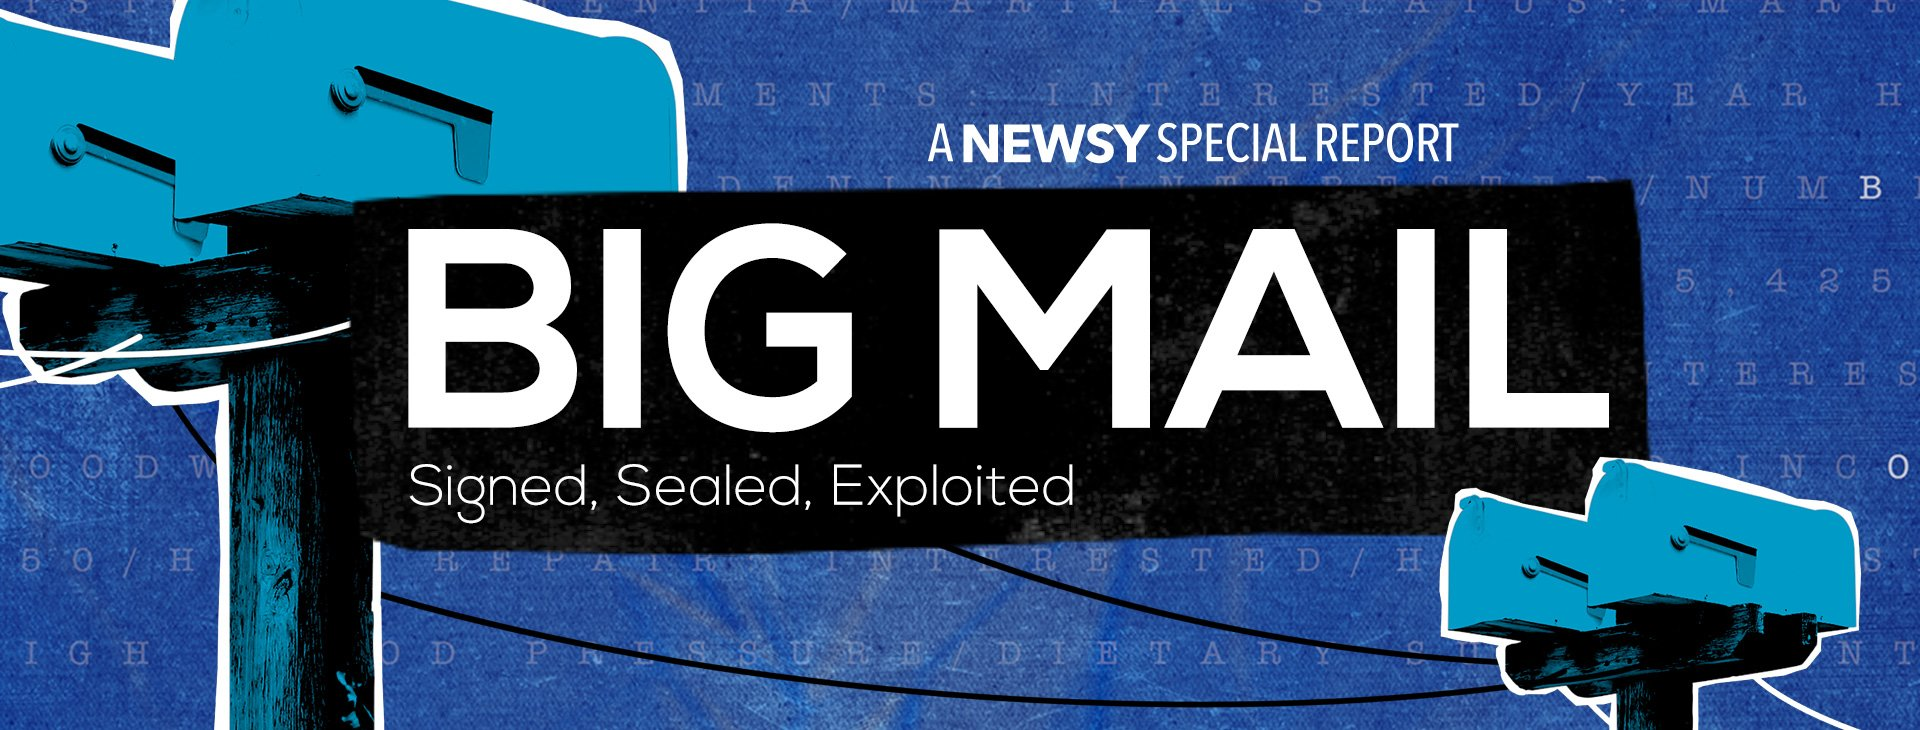 Big Mail: Sign, Sealed, Exploited